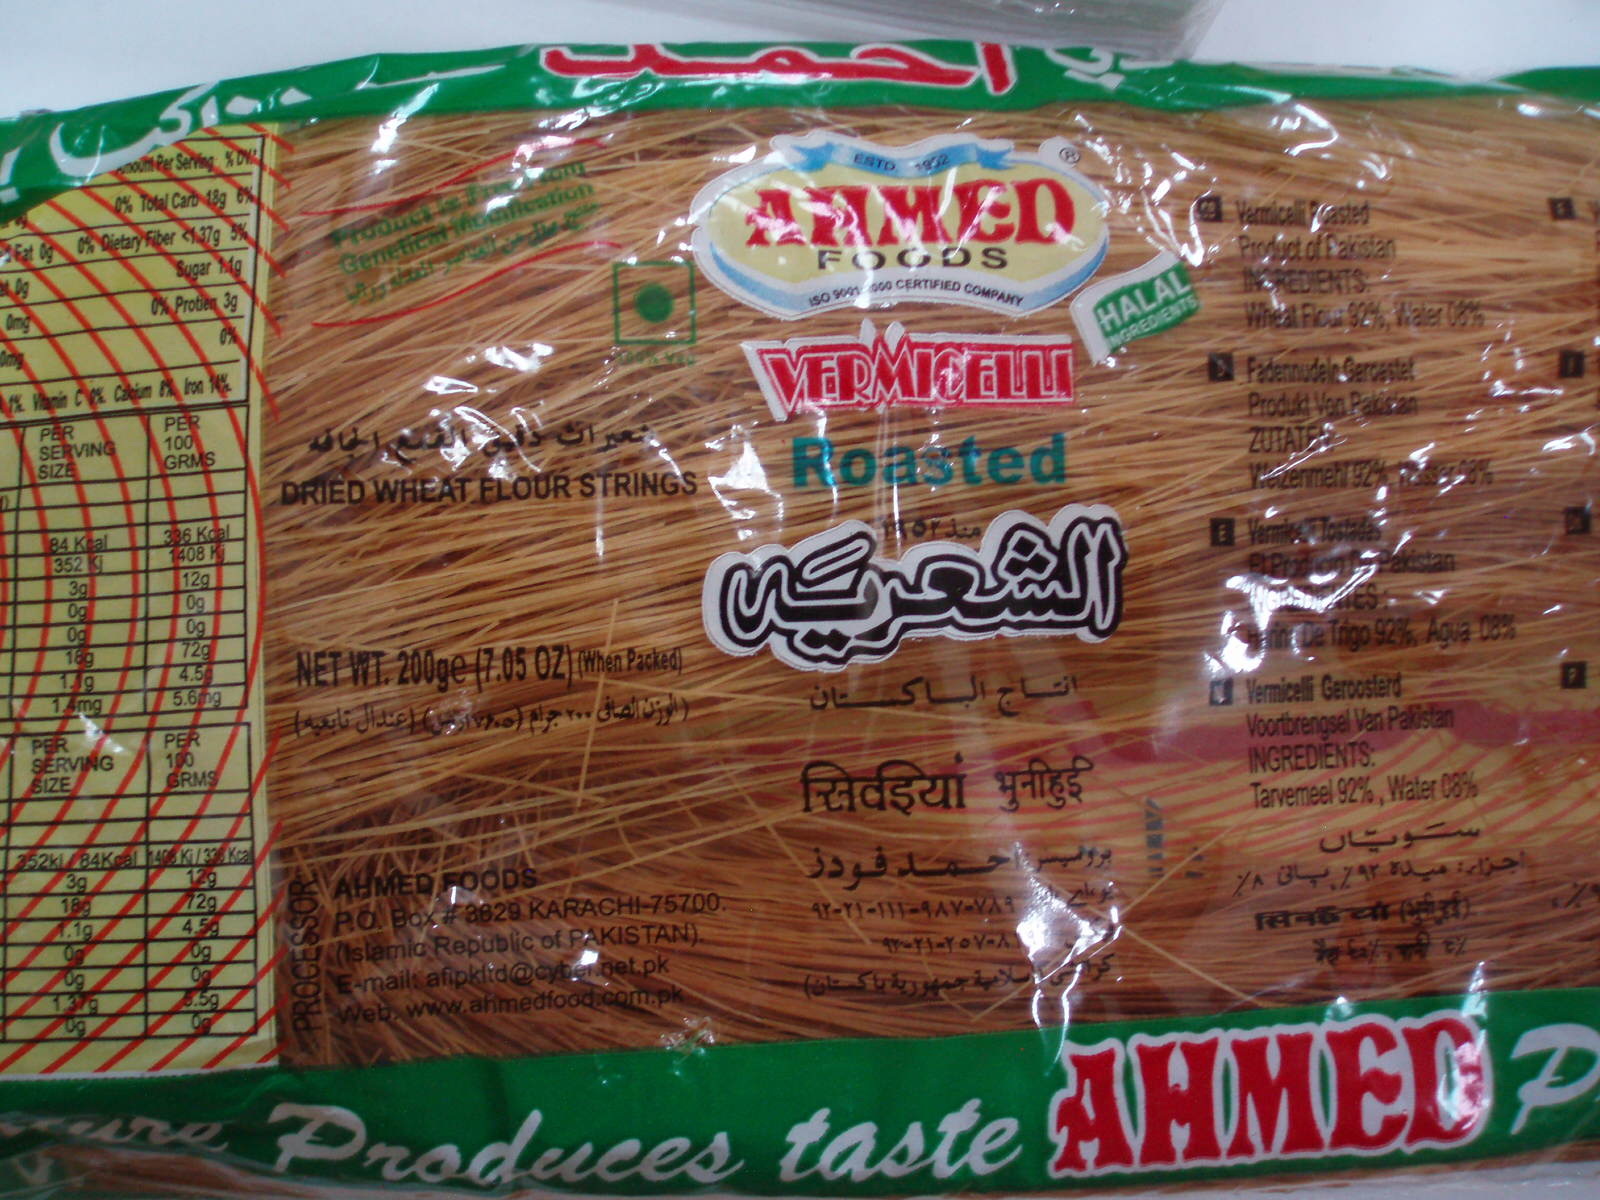 Vermicelli Roasted-Ahmed-200 gm